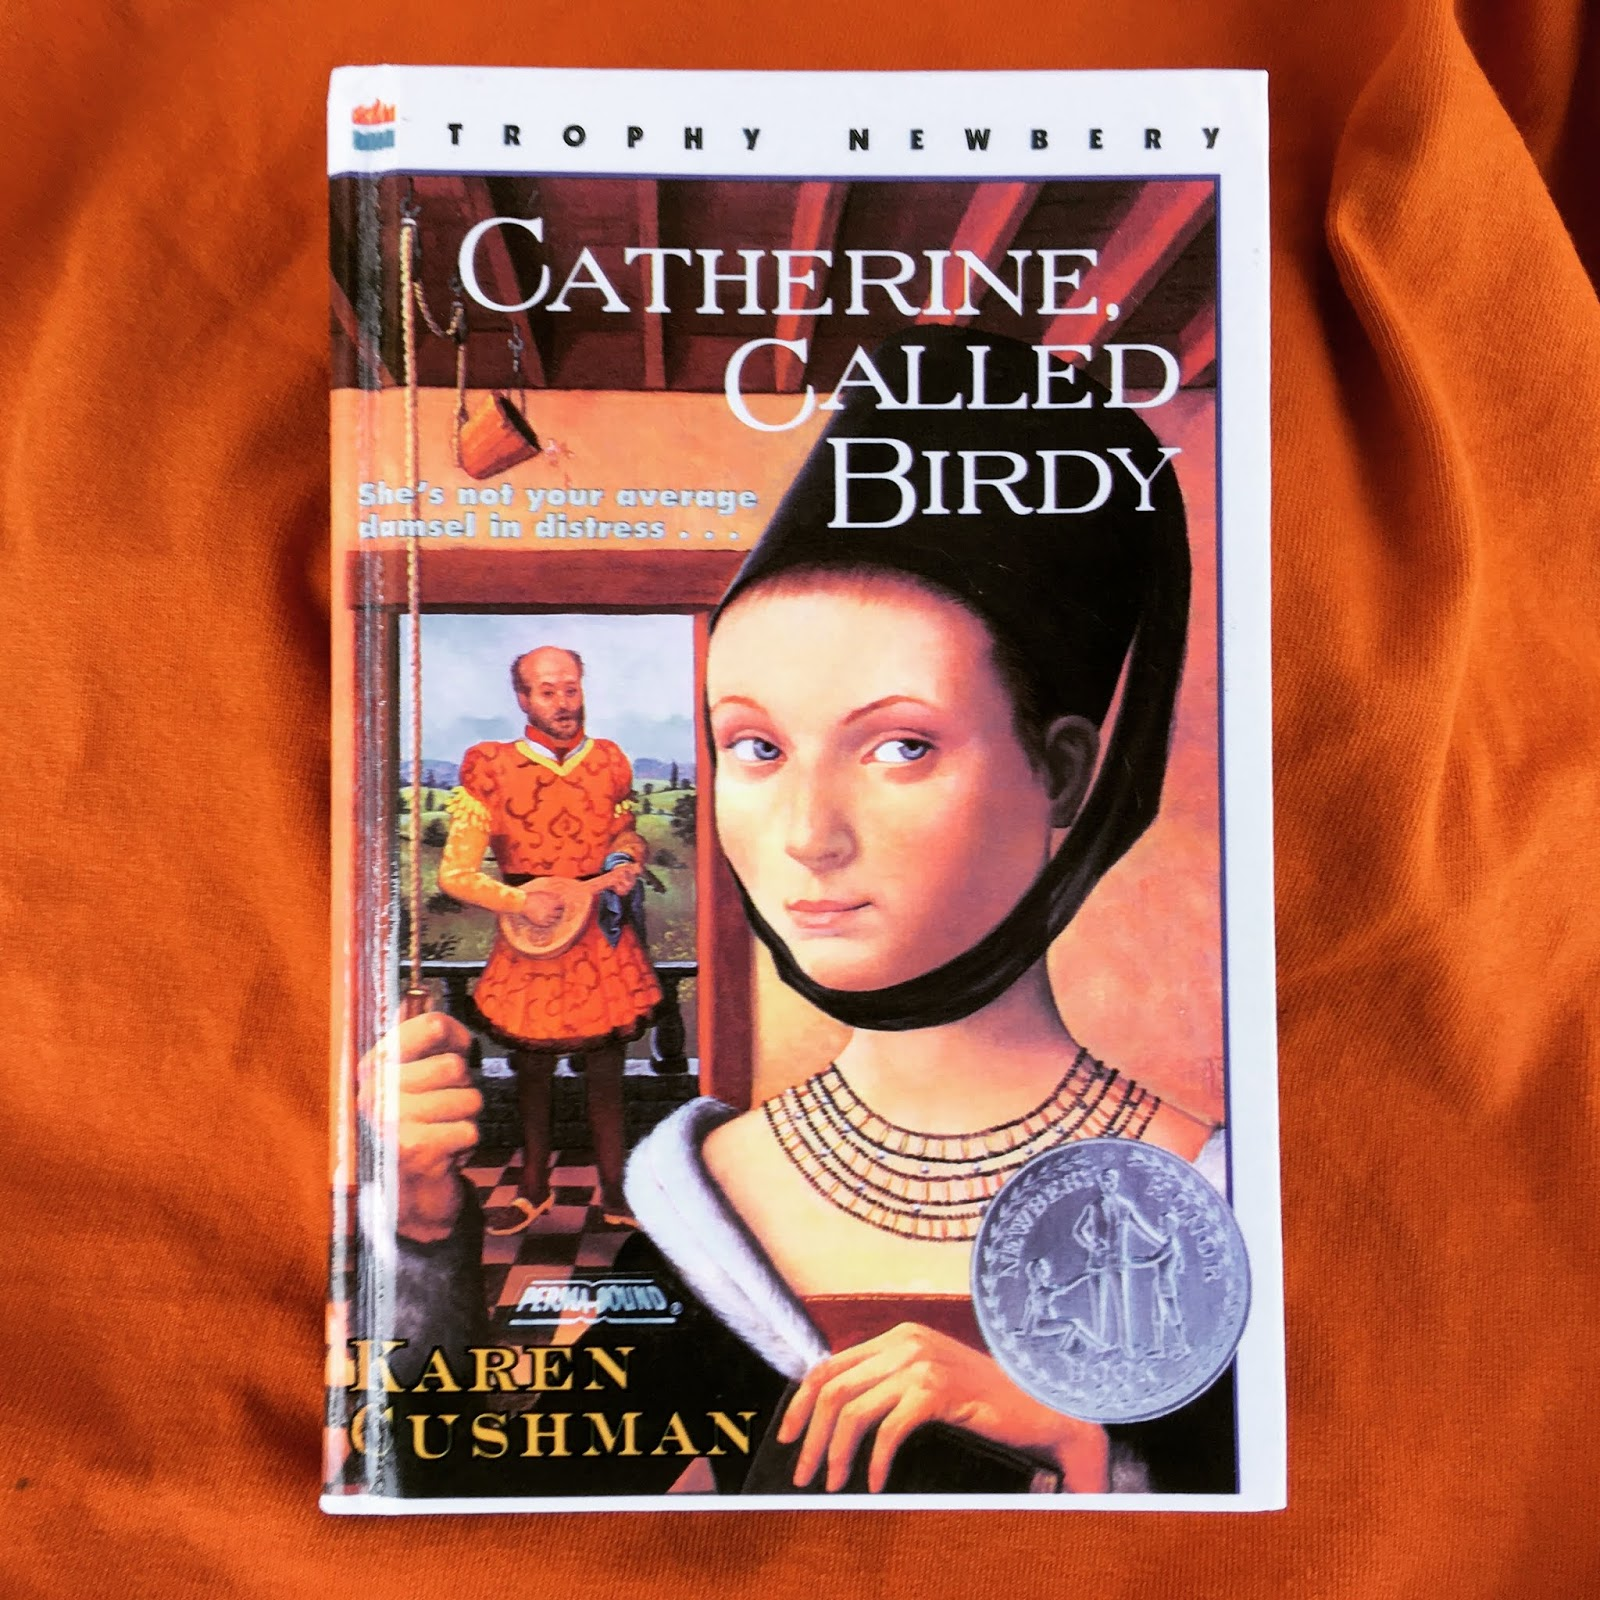 Review of Catherine, Called Birdy by Karen Cushman | Lydia Sanders #TwistyMustacheReviews